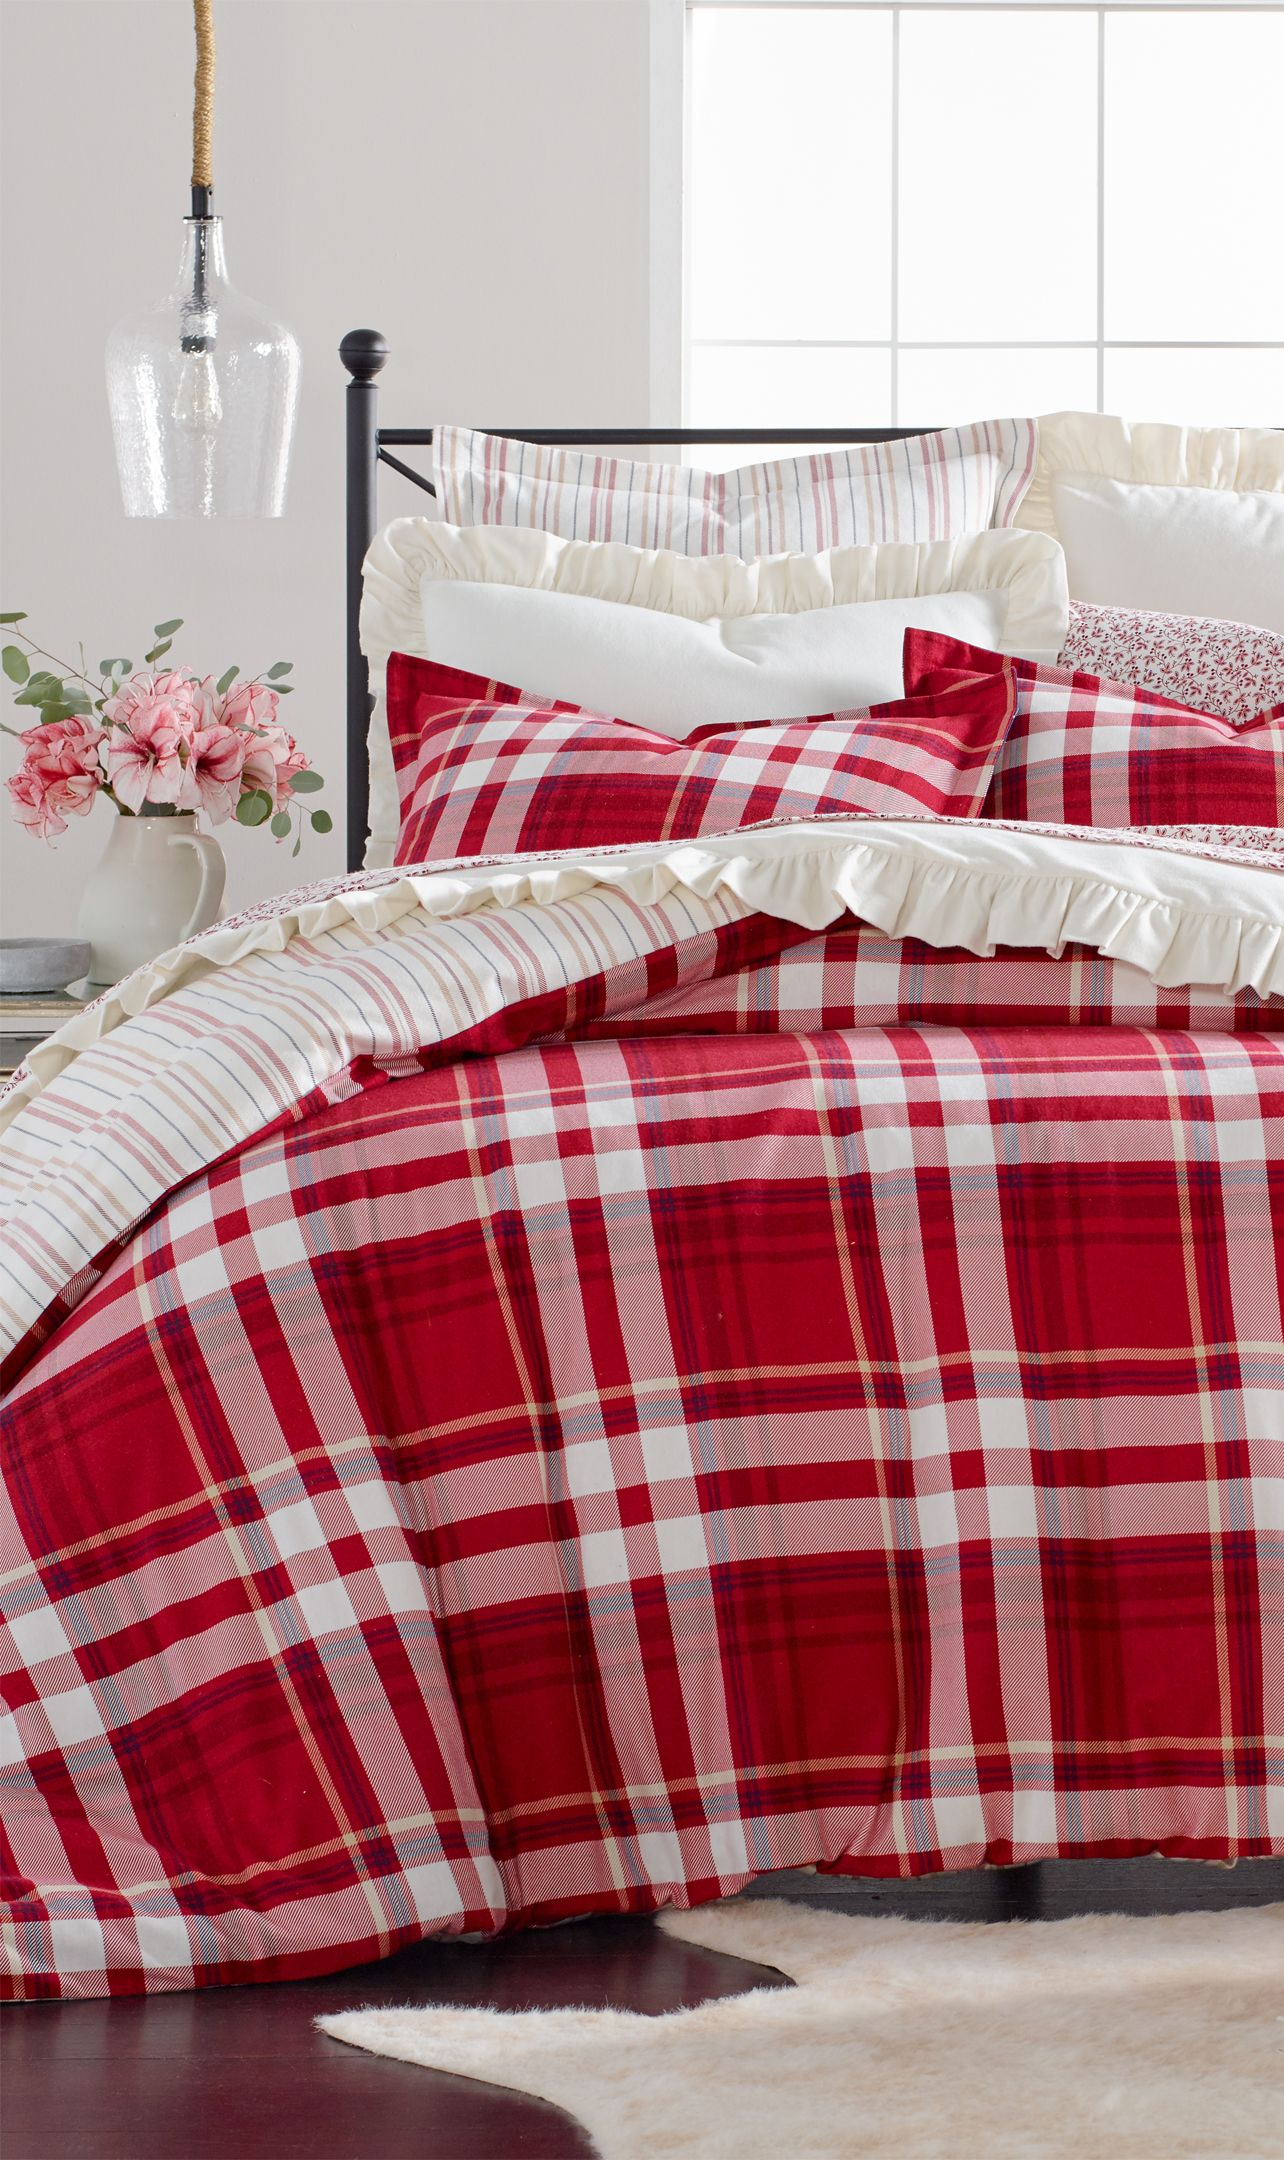 Martha Stewart Collection Closeout Winter Plaid Cotton Flannel Bedding Collection Created For Macy S Reviews Bed In A Bag Bed Bath Macy S Bed Linens Luxury Flannel Bedding Duvet Covers